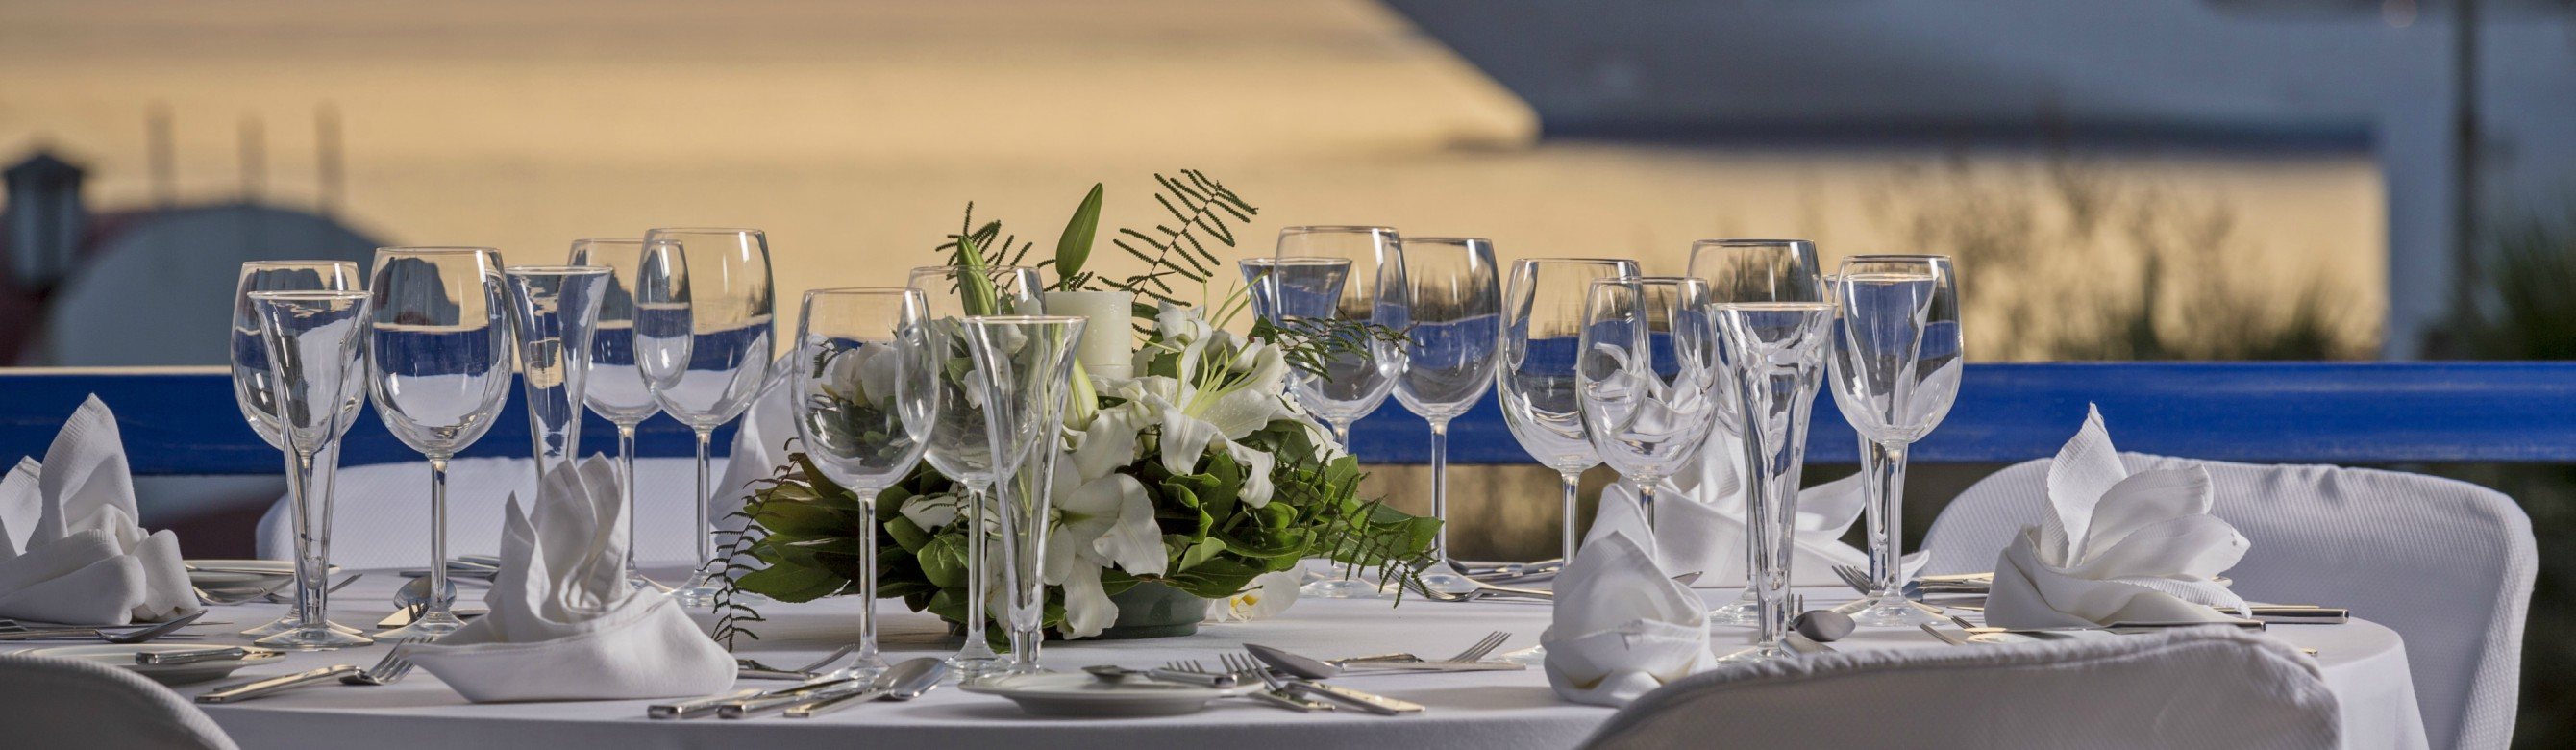 _ Mykonos_Theoxenia_-_Wedding_dinner0001.jpg